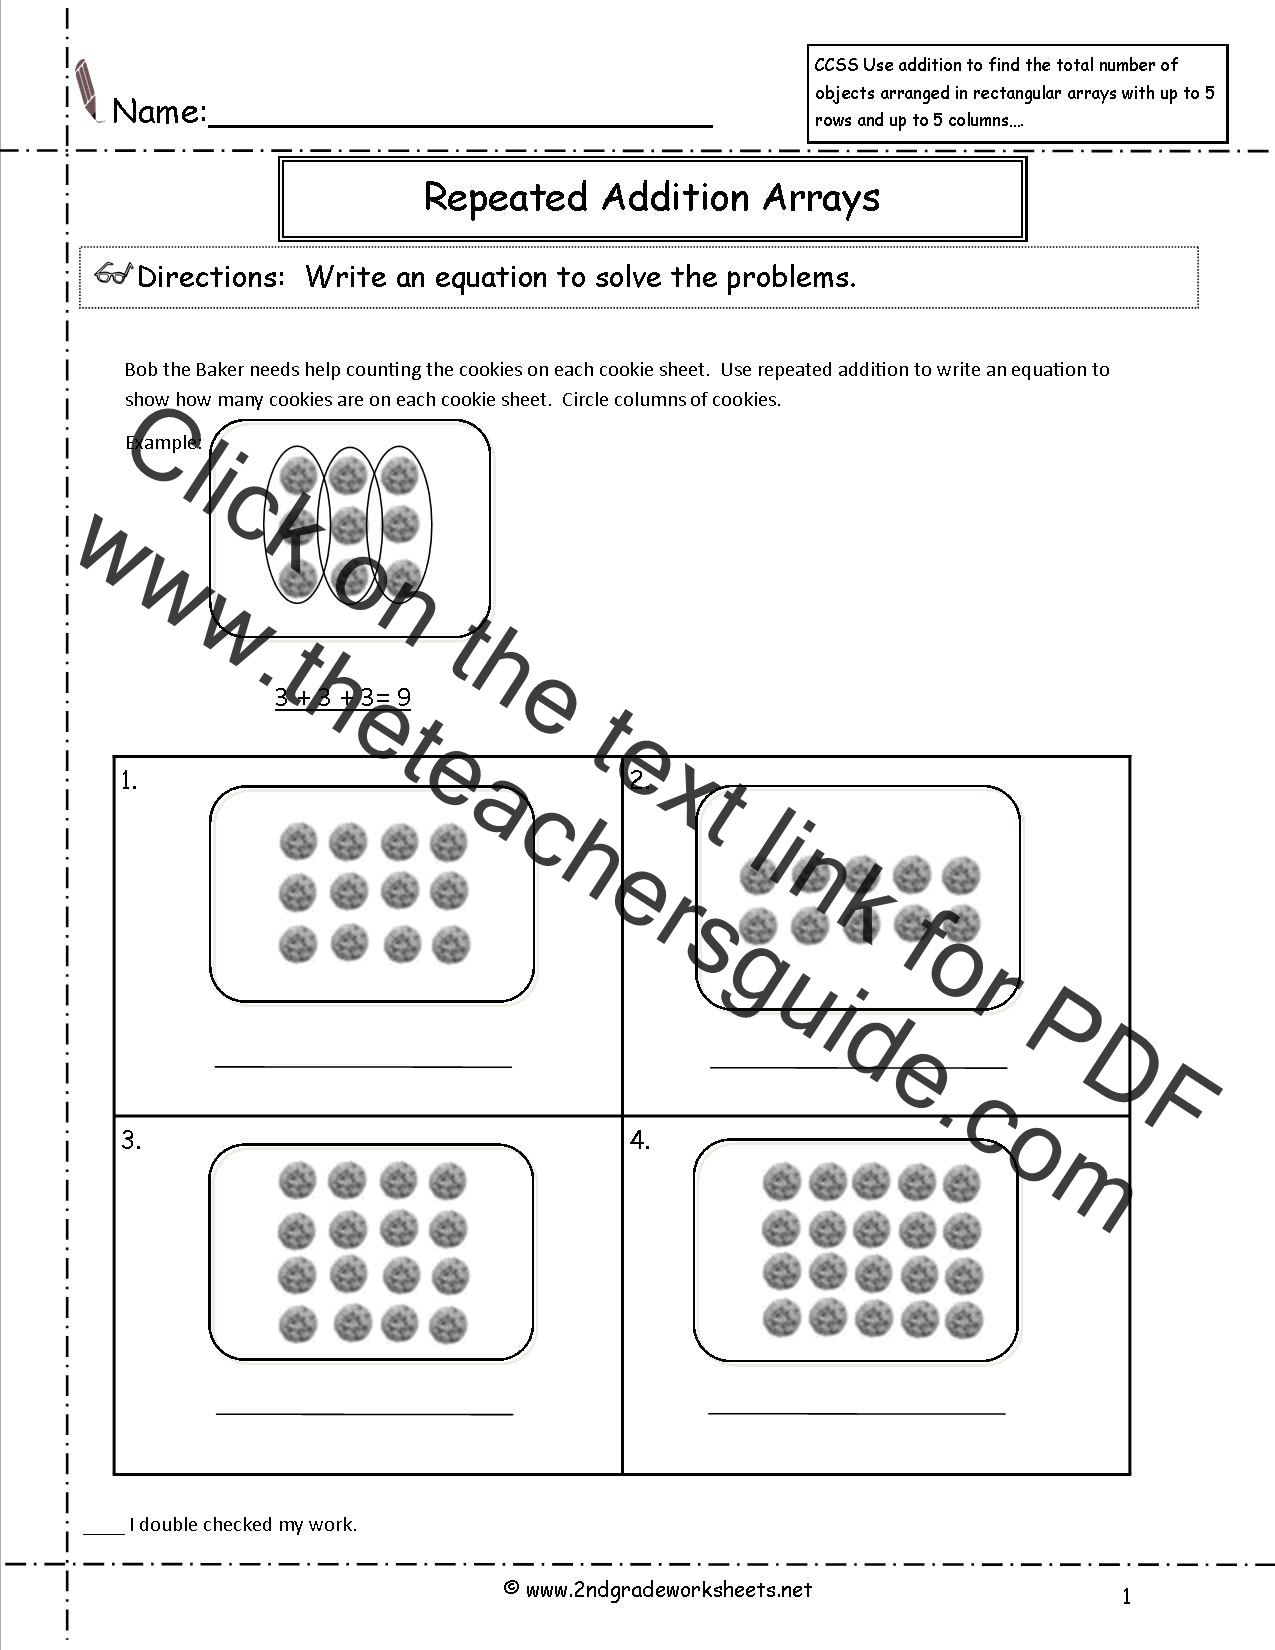 Worksheet Common Core Math Worksheets 2nd Grade 2nd grade math common core state standards worksheets ccss 2 oa 4 worksheets